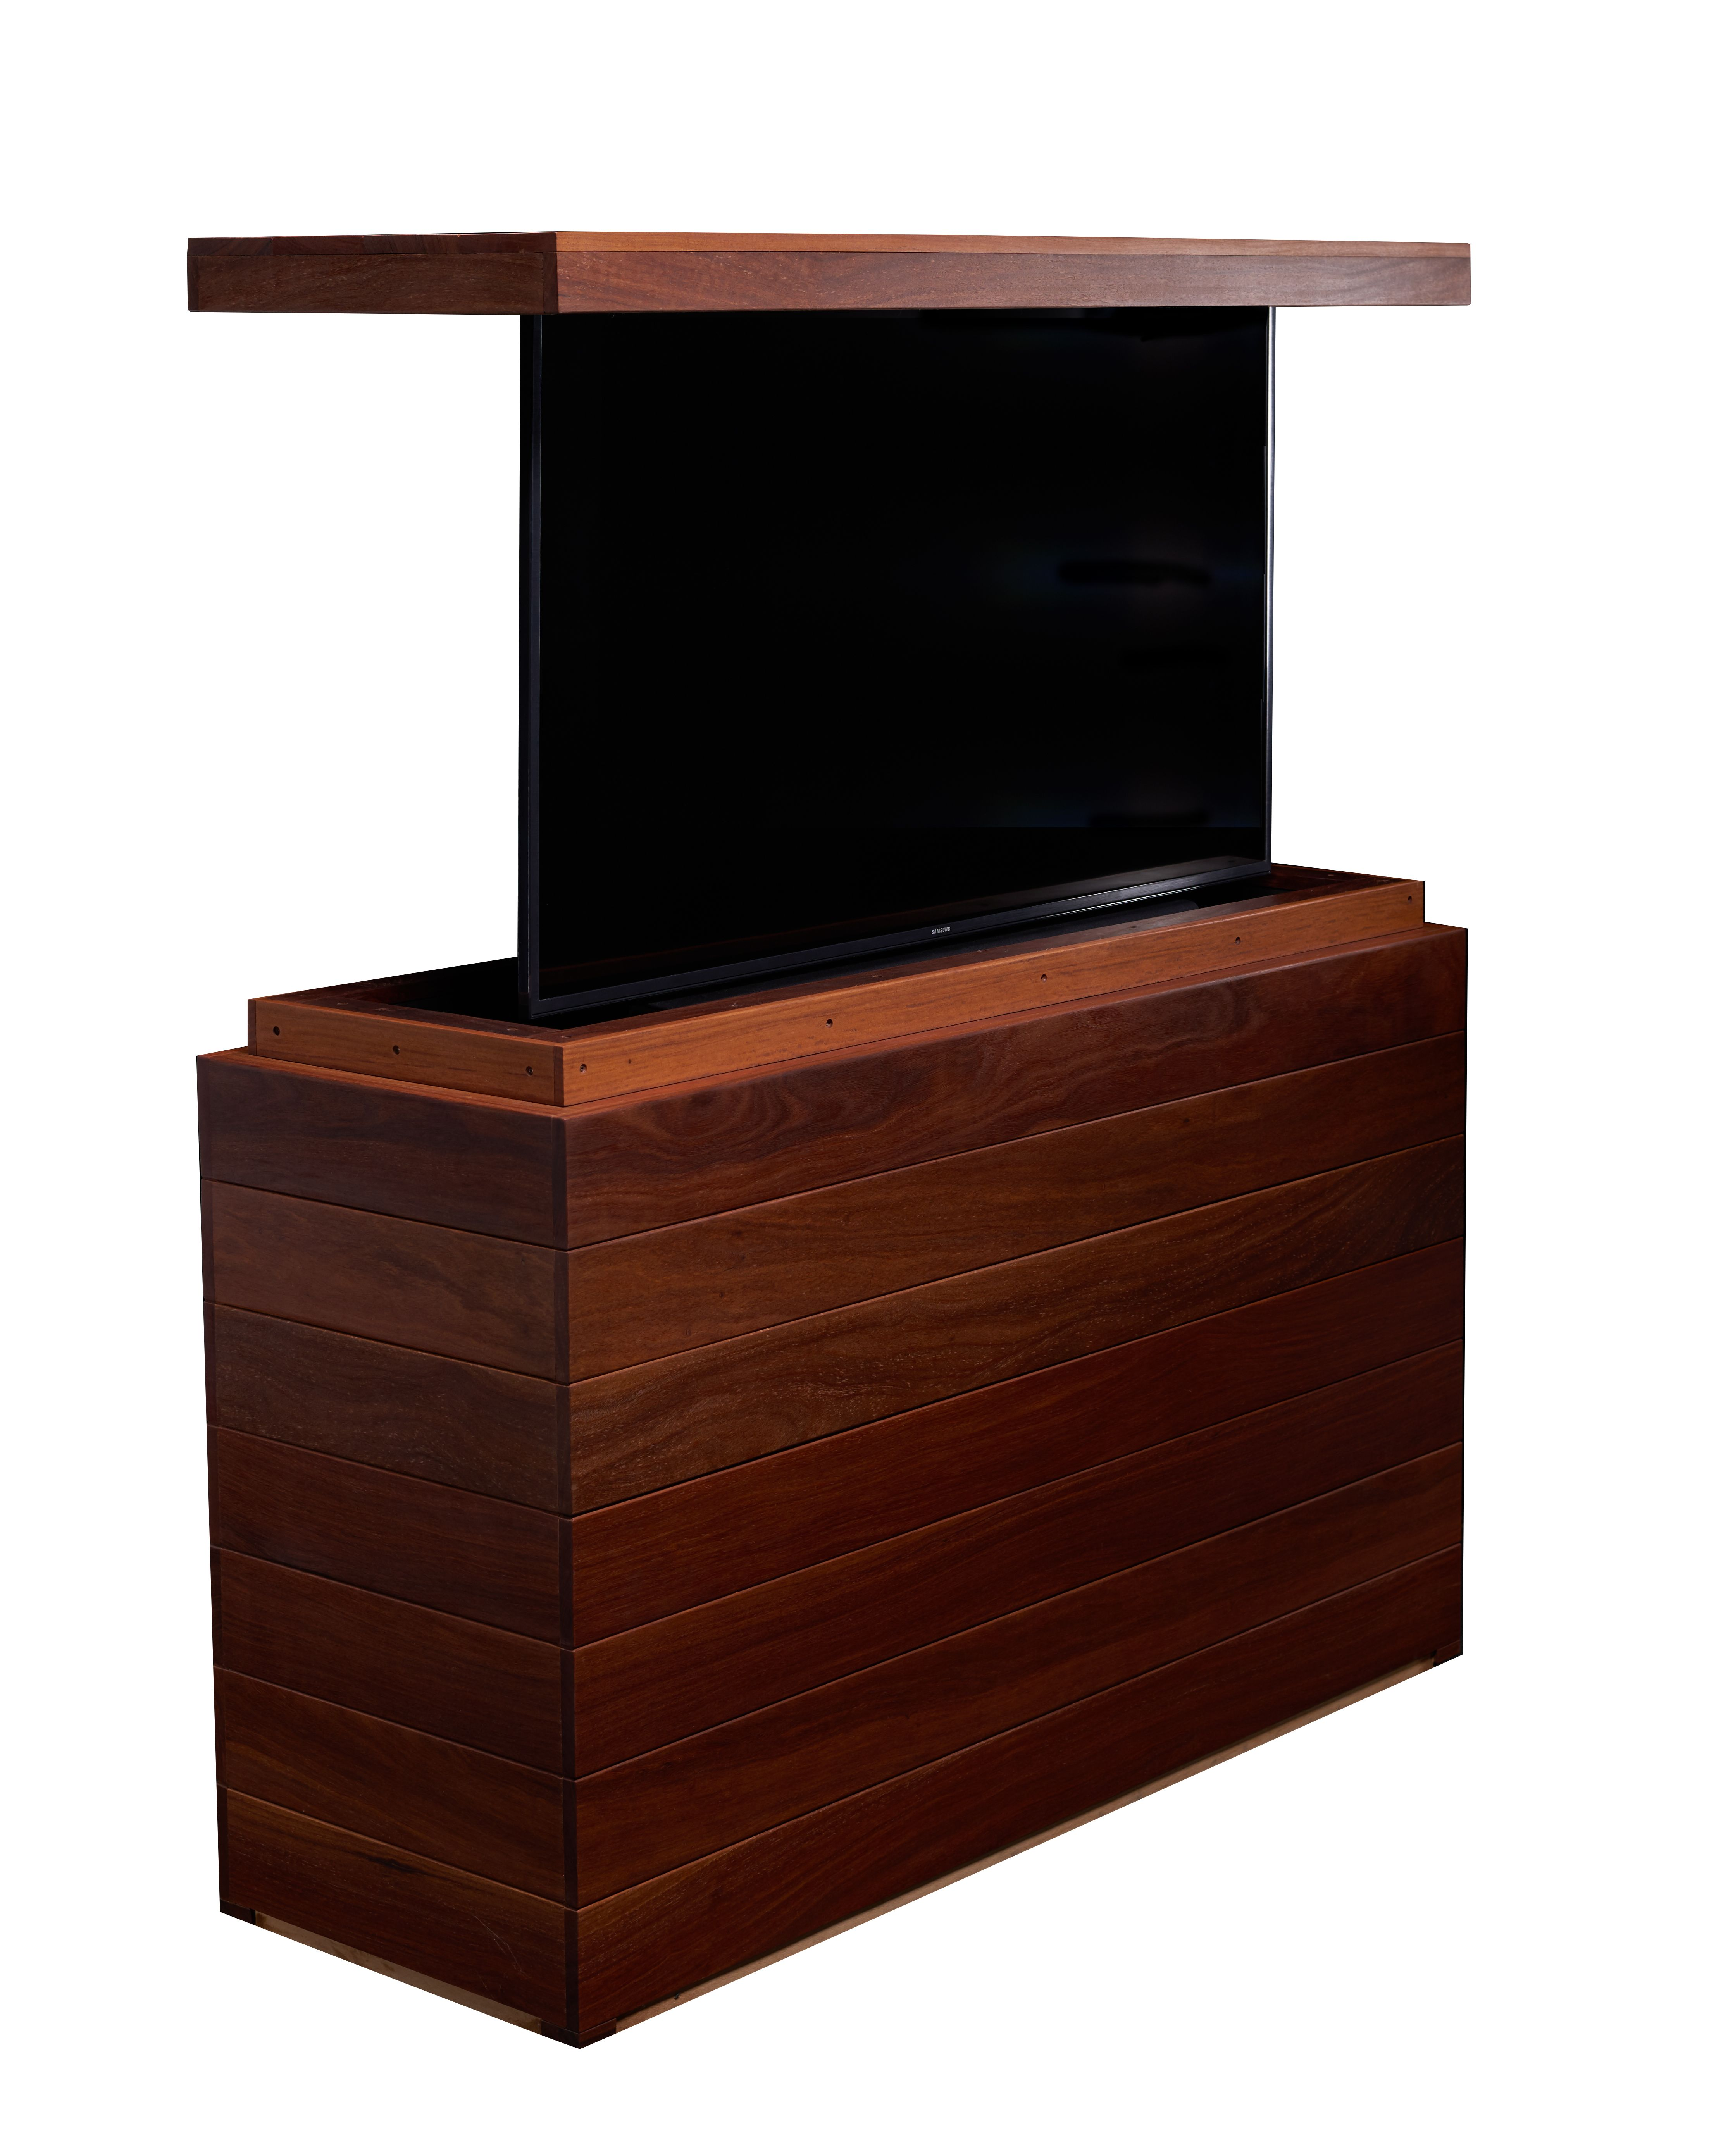 Cabinet Tronix Cumaru Wood Furniture Hides And Protects Tv Outside In The Back Yard Weatherproof Design Ma Outdoor Tv Cabinet Tv Lift Cabinet Hot Tub Outdoor